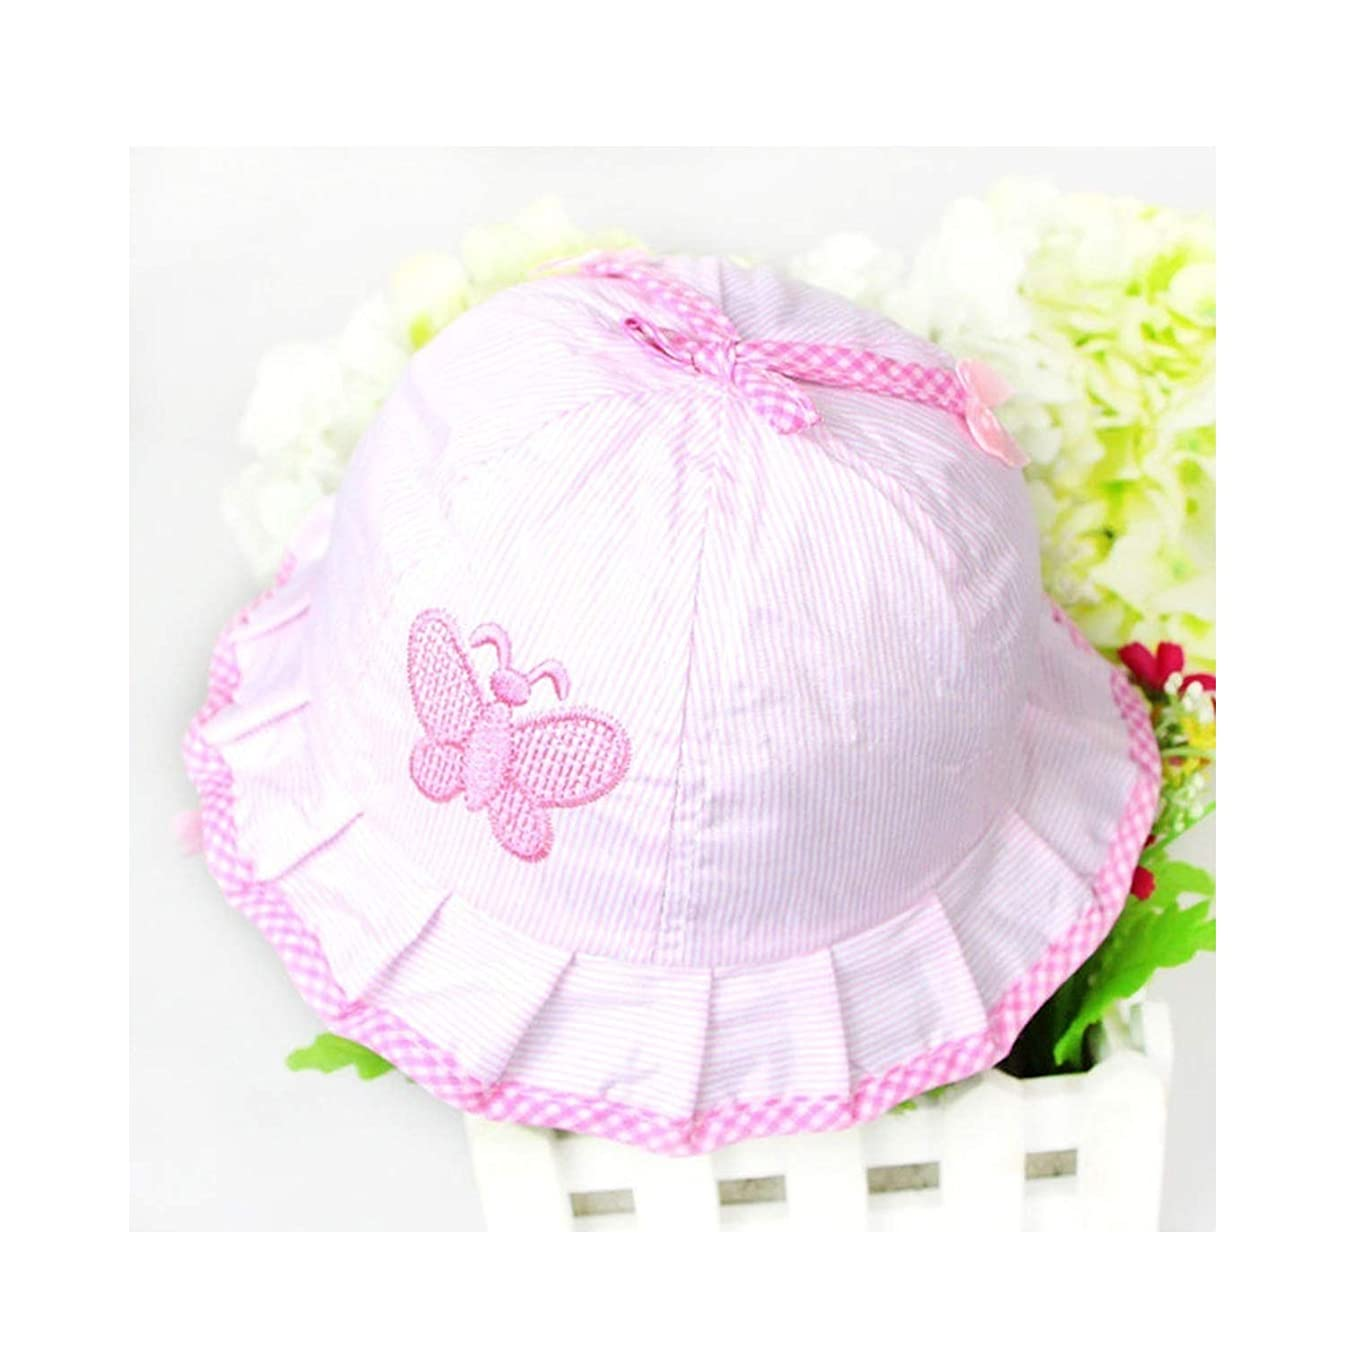 1PC Baby Hat Girl Magic Reversible Bucket Cap for 3 to 12 Months Infant Sun Hats Summer Flower Bow Knot Style